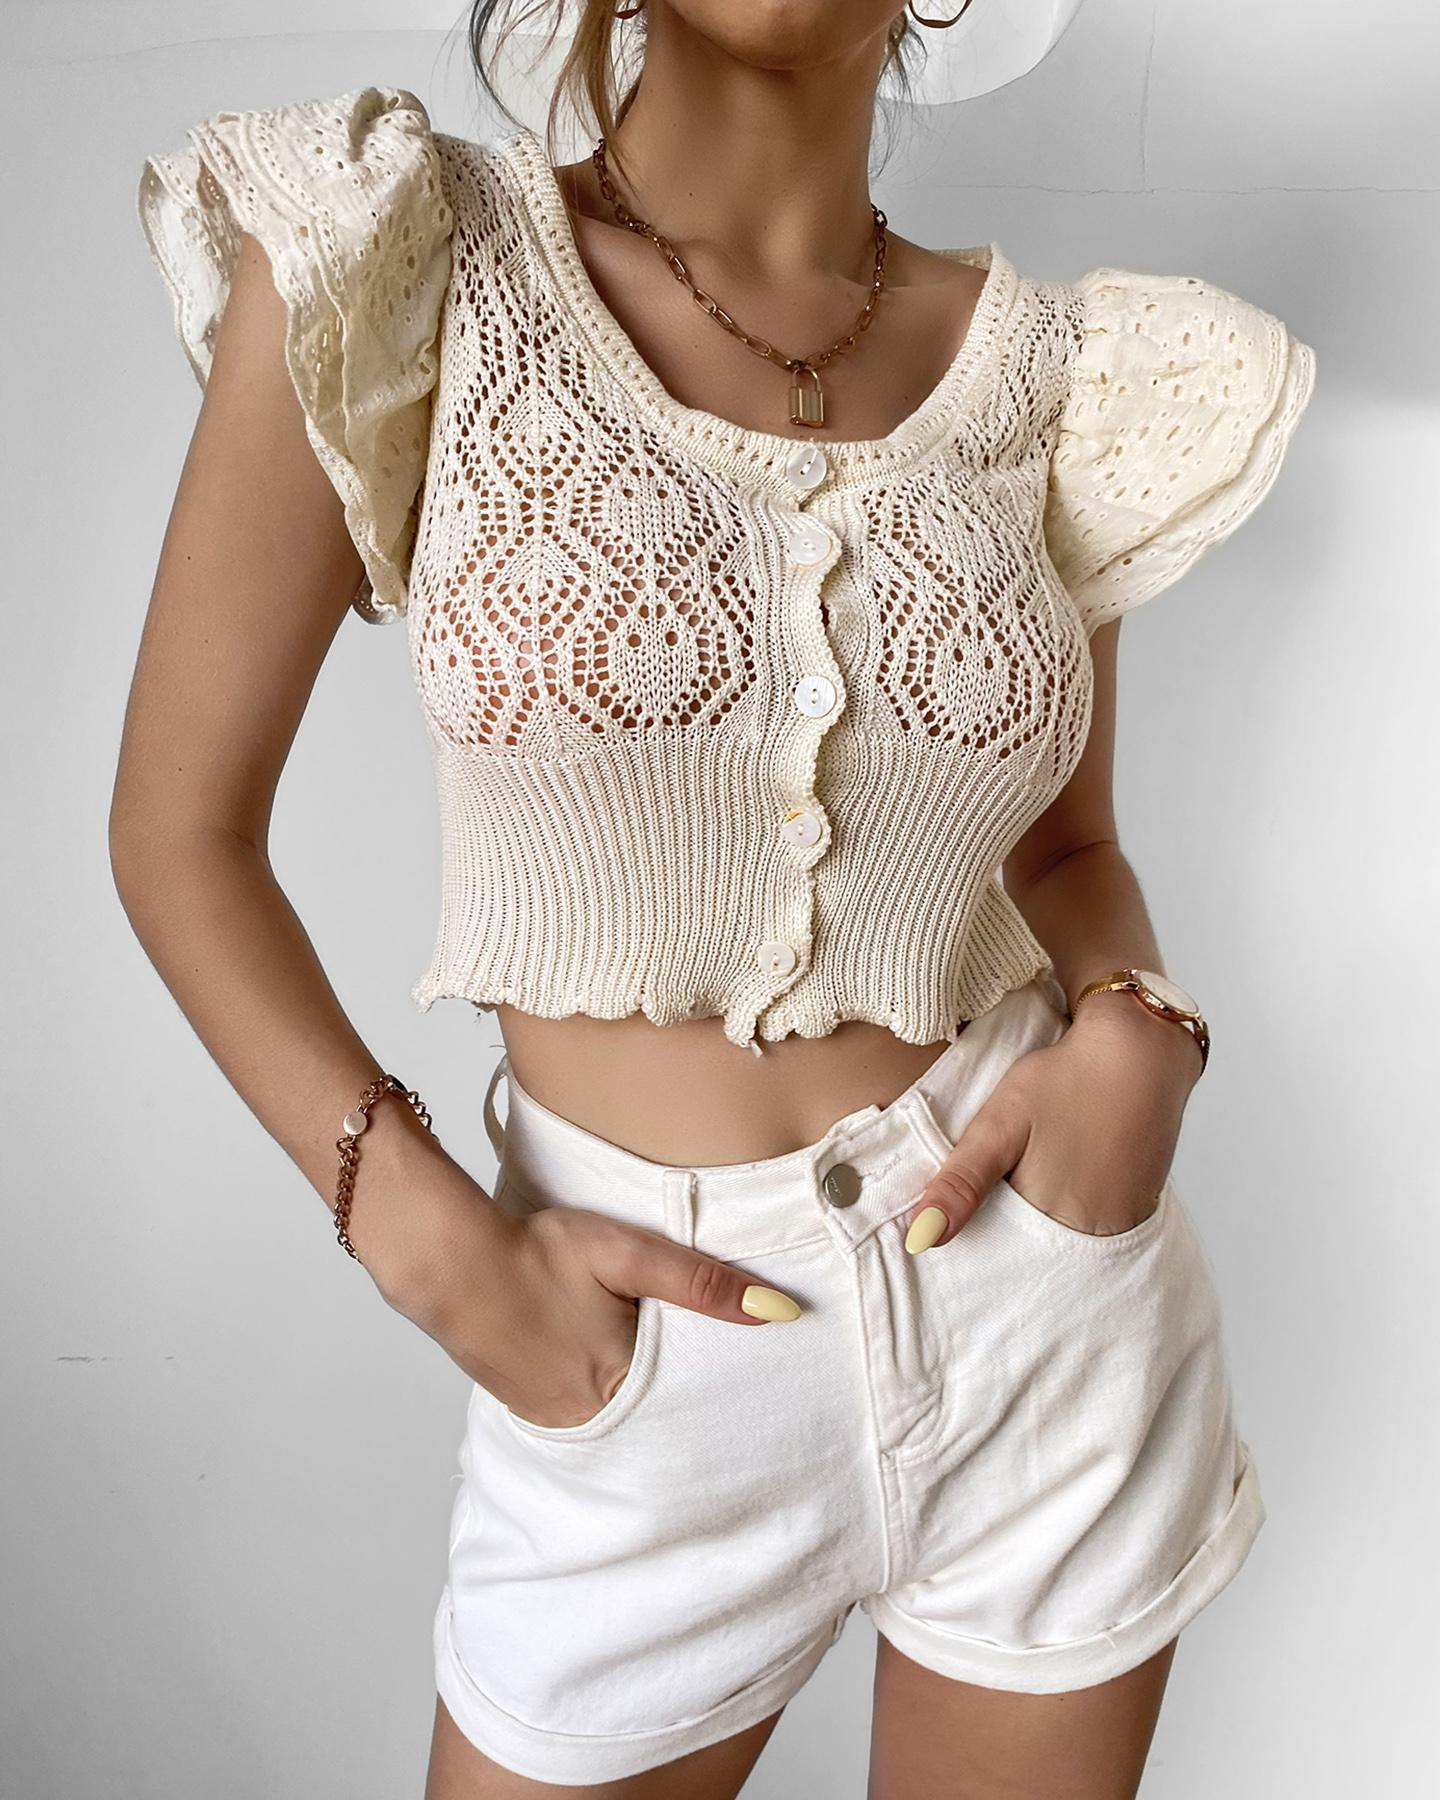 Knit Hollow Out Eyelet Embroidery Crop Top фото